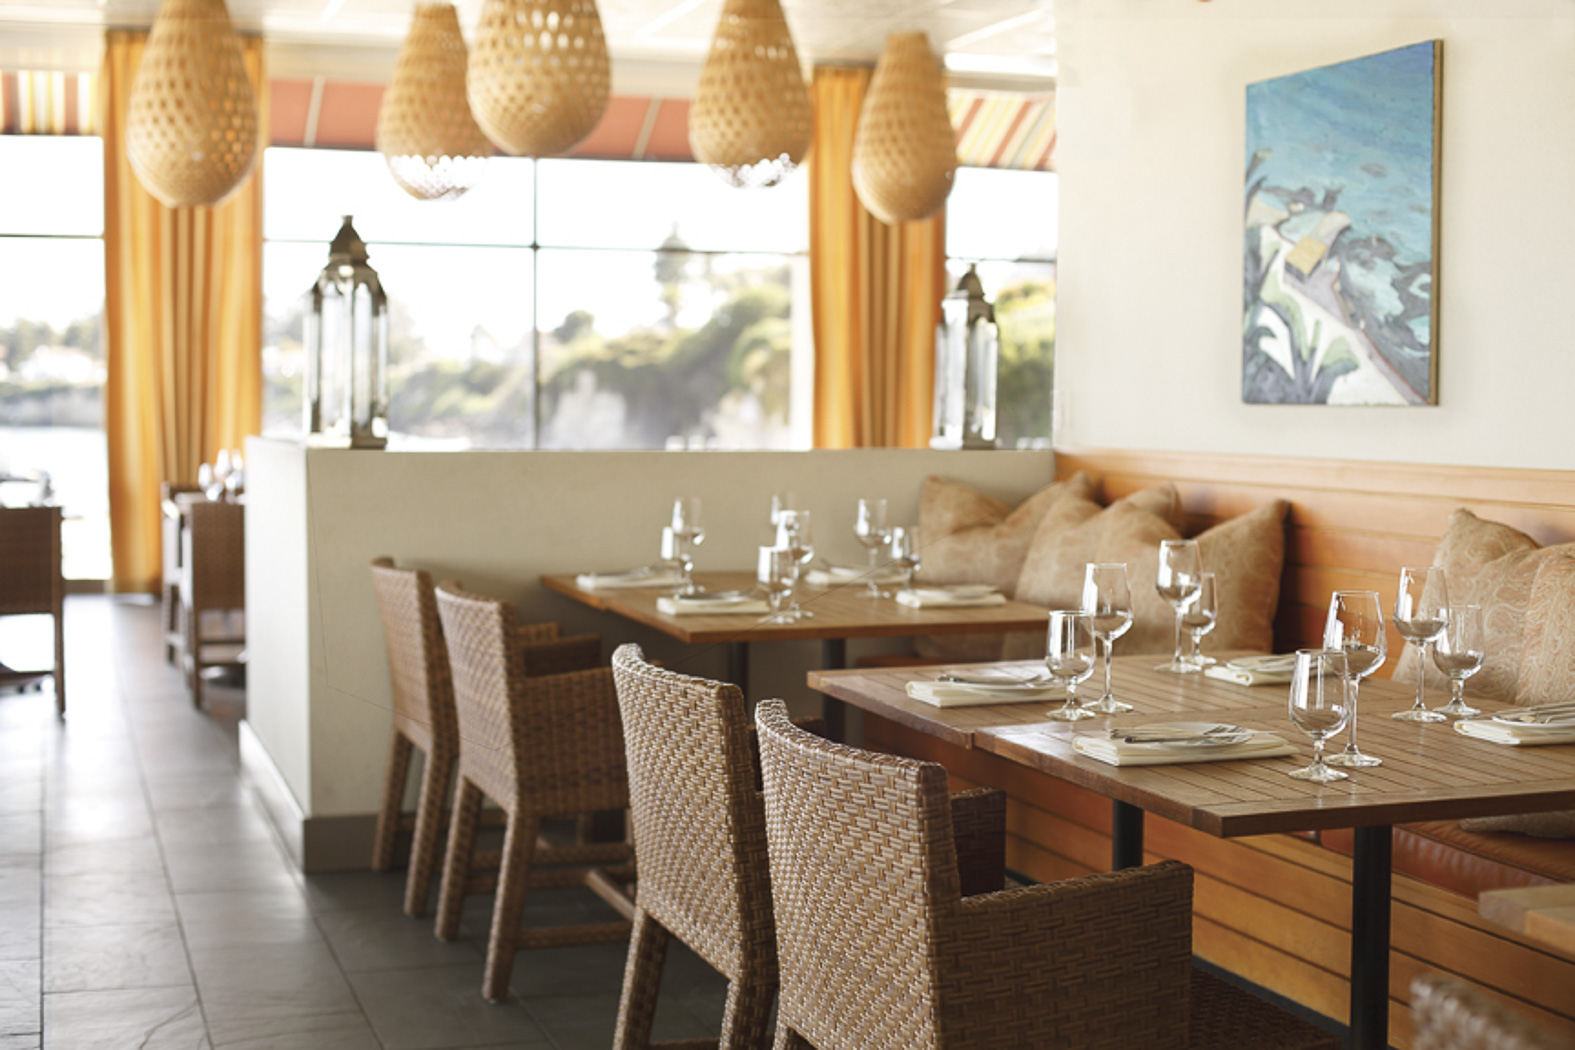 Bright Casual Dining Room With Rattan Chairs And Wooden Benches Nice Champagne Glasses